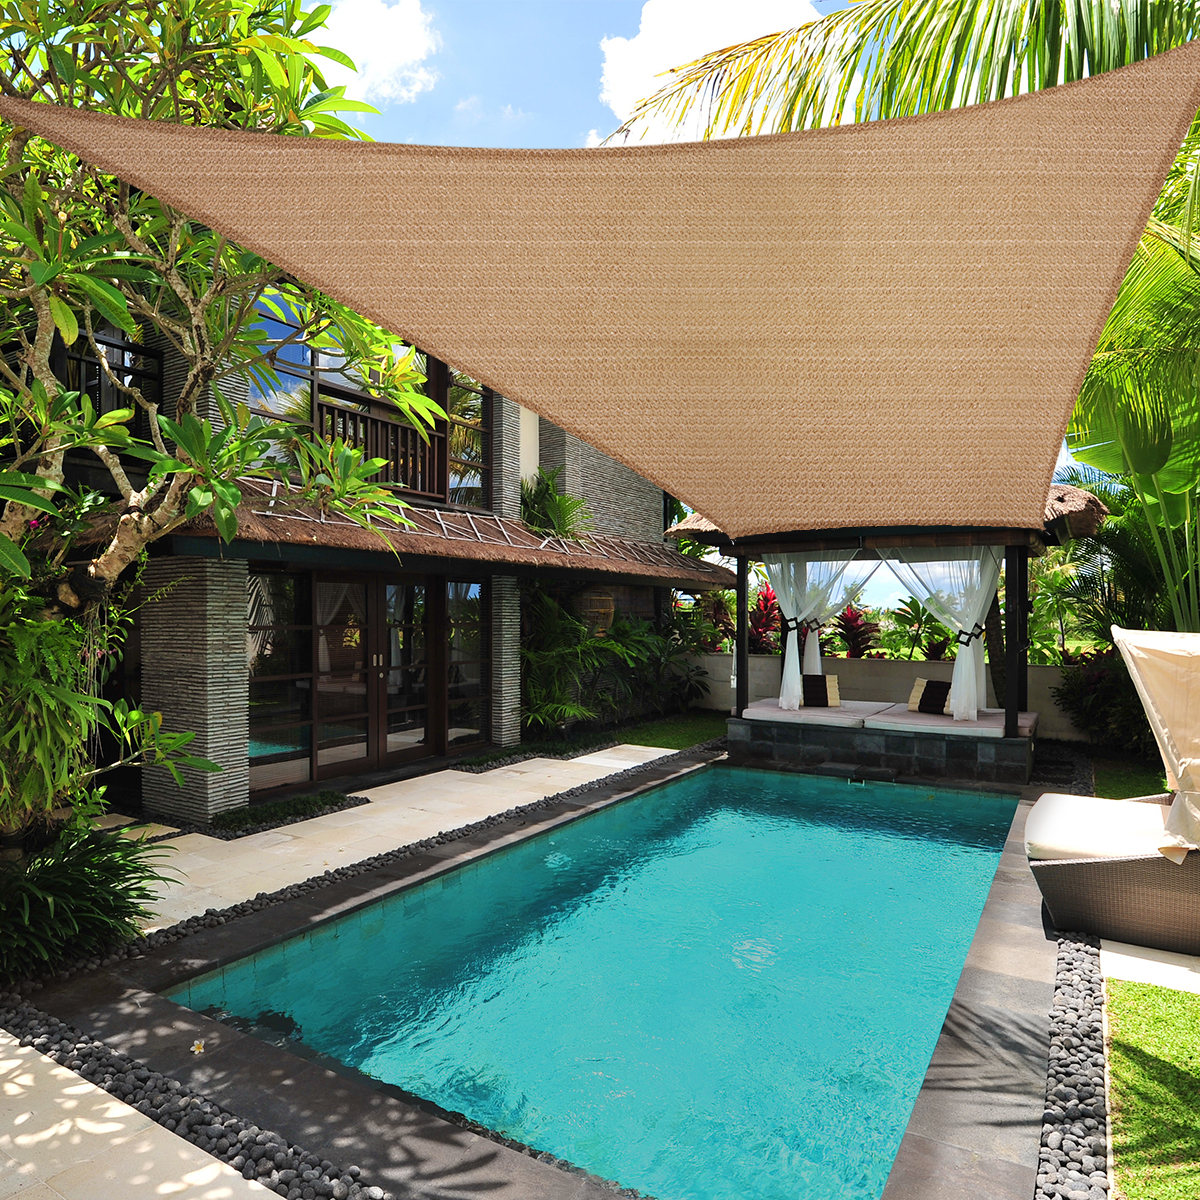 Sun Shade Sail Permeable Rectangle Square Outdoor Patio Deck Pool ...